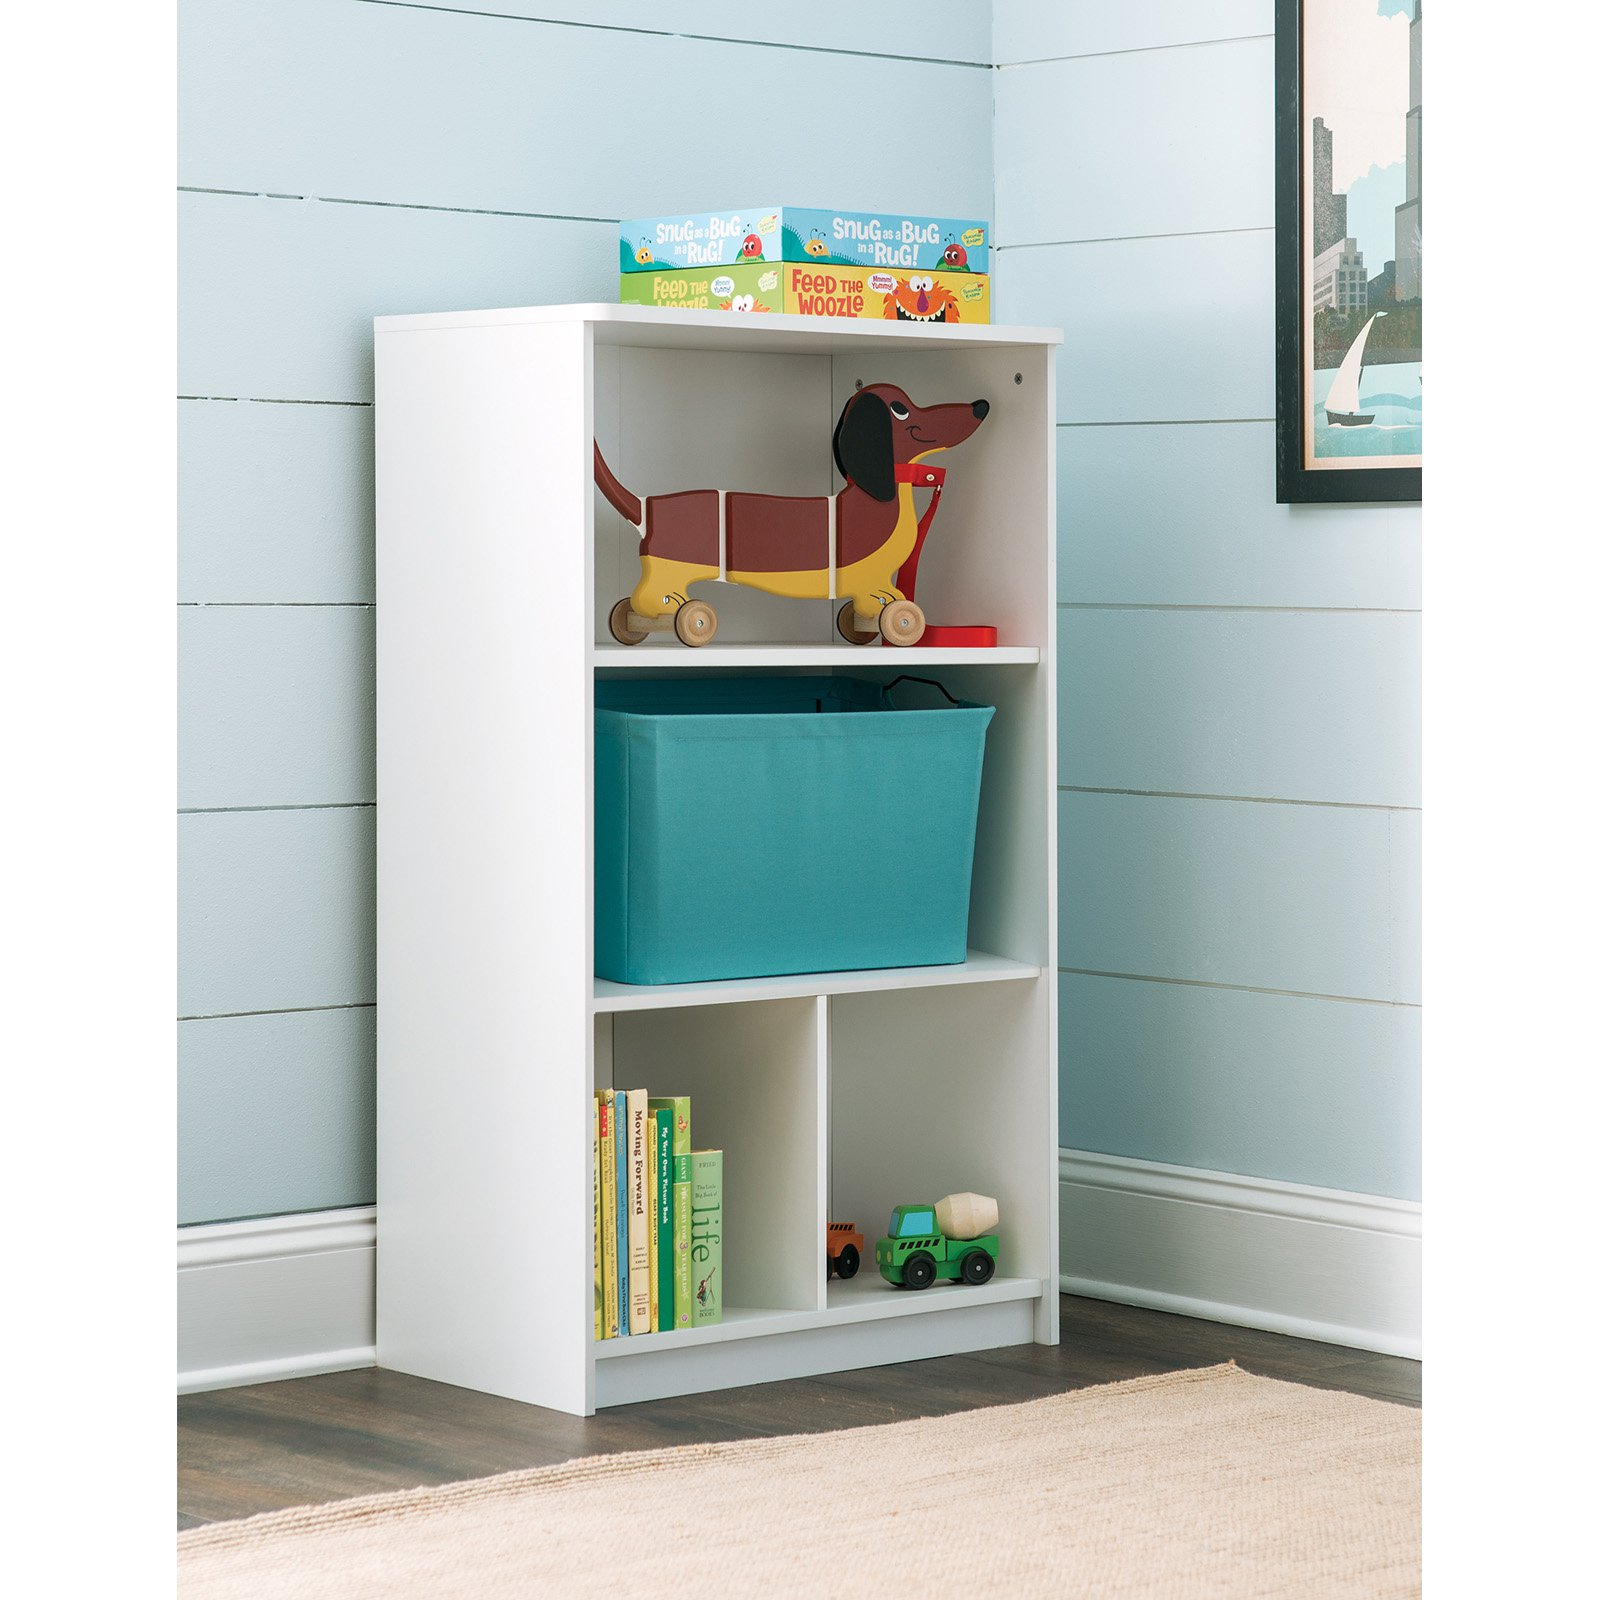 ClosetMaid KidSpace 3-Tier Bookcase